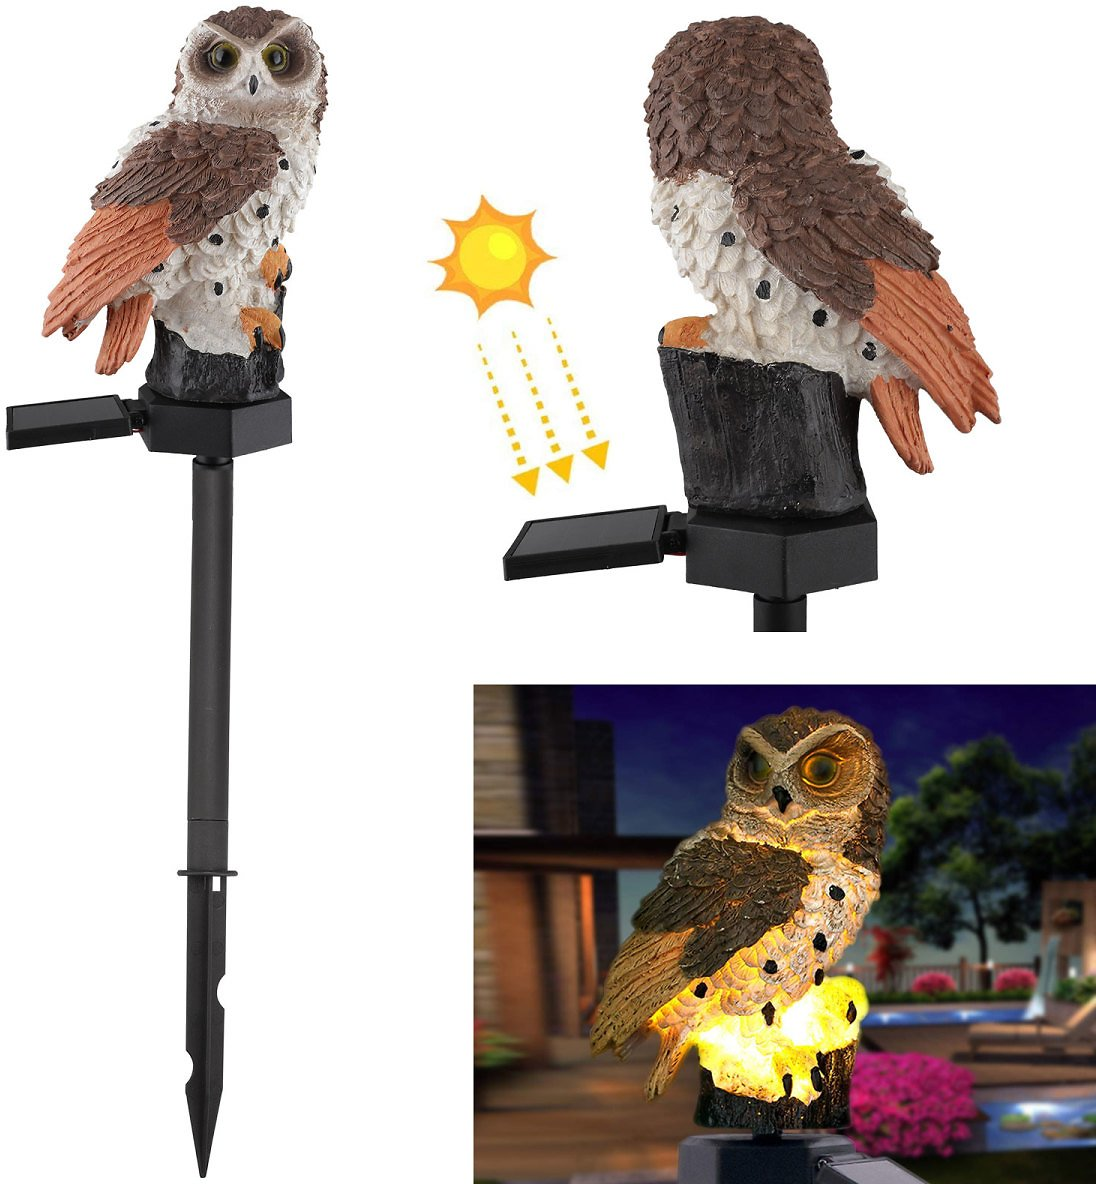 Garden Statue Owl Light - TSV Outdoor Christmas Decorations Resin Statue with Solar LED Lights for Patio Yard Lawn Ornaments, Fall Winter Thanksgiving Decor, 18 X 6Inch, Housewarming Gift